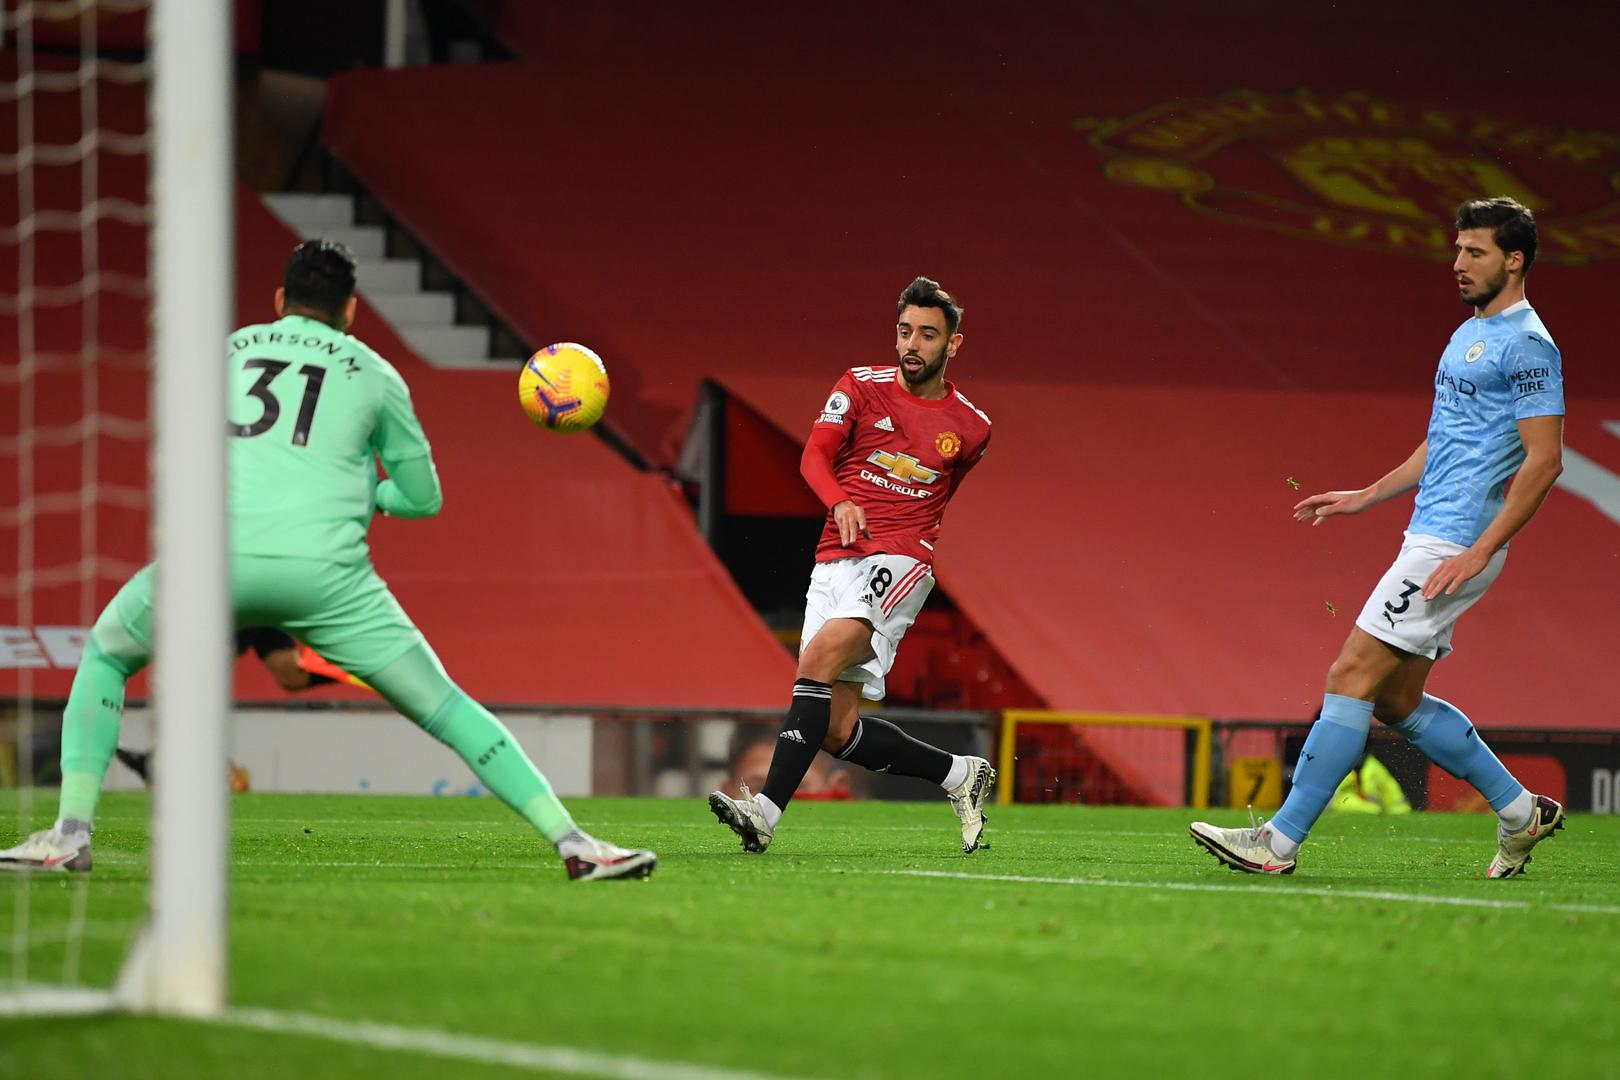 Bruno Fernandes shoots on target against Manchester City in the Premier League at Old Trafford